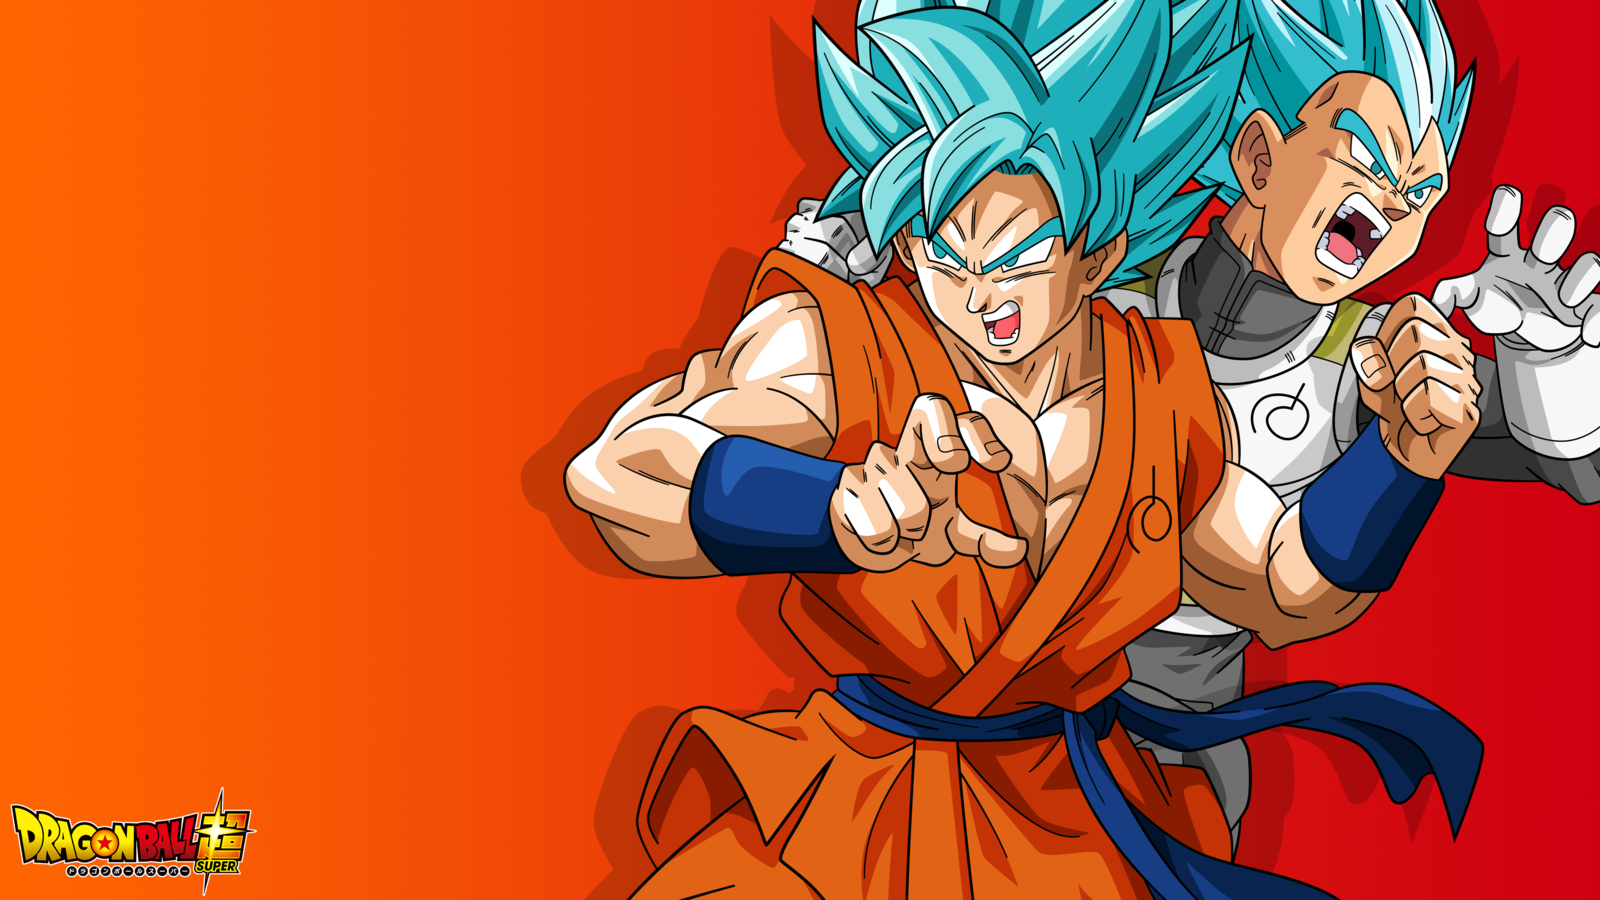 Dragon ball super wallpapers mobile sdeerwallpaper dbz - Vegeta wallpapers for mobile ...